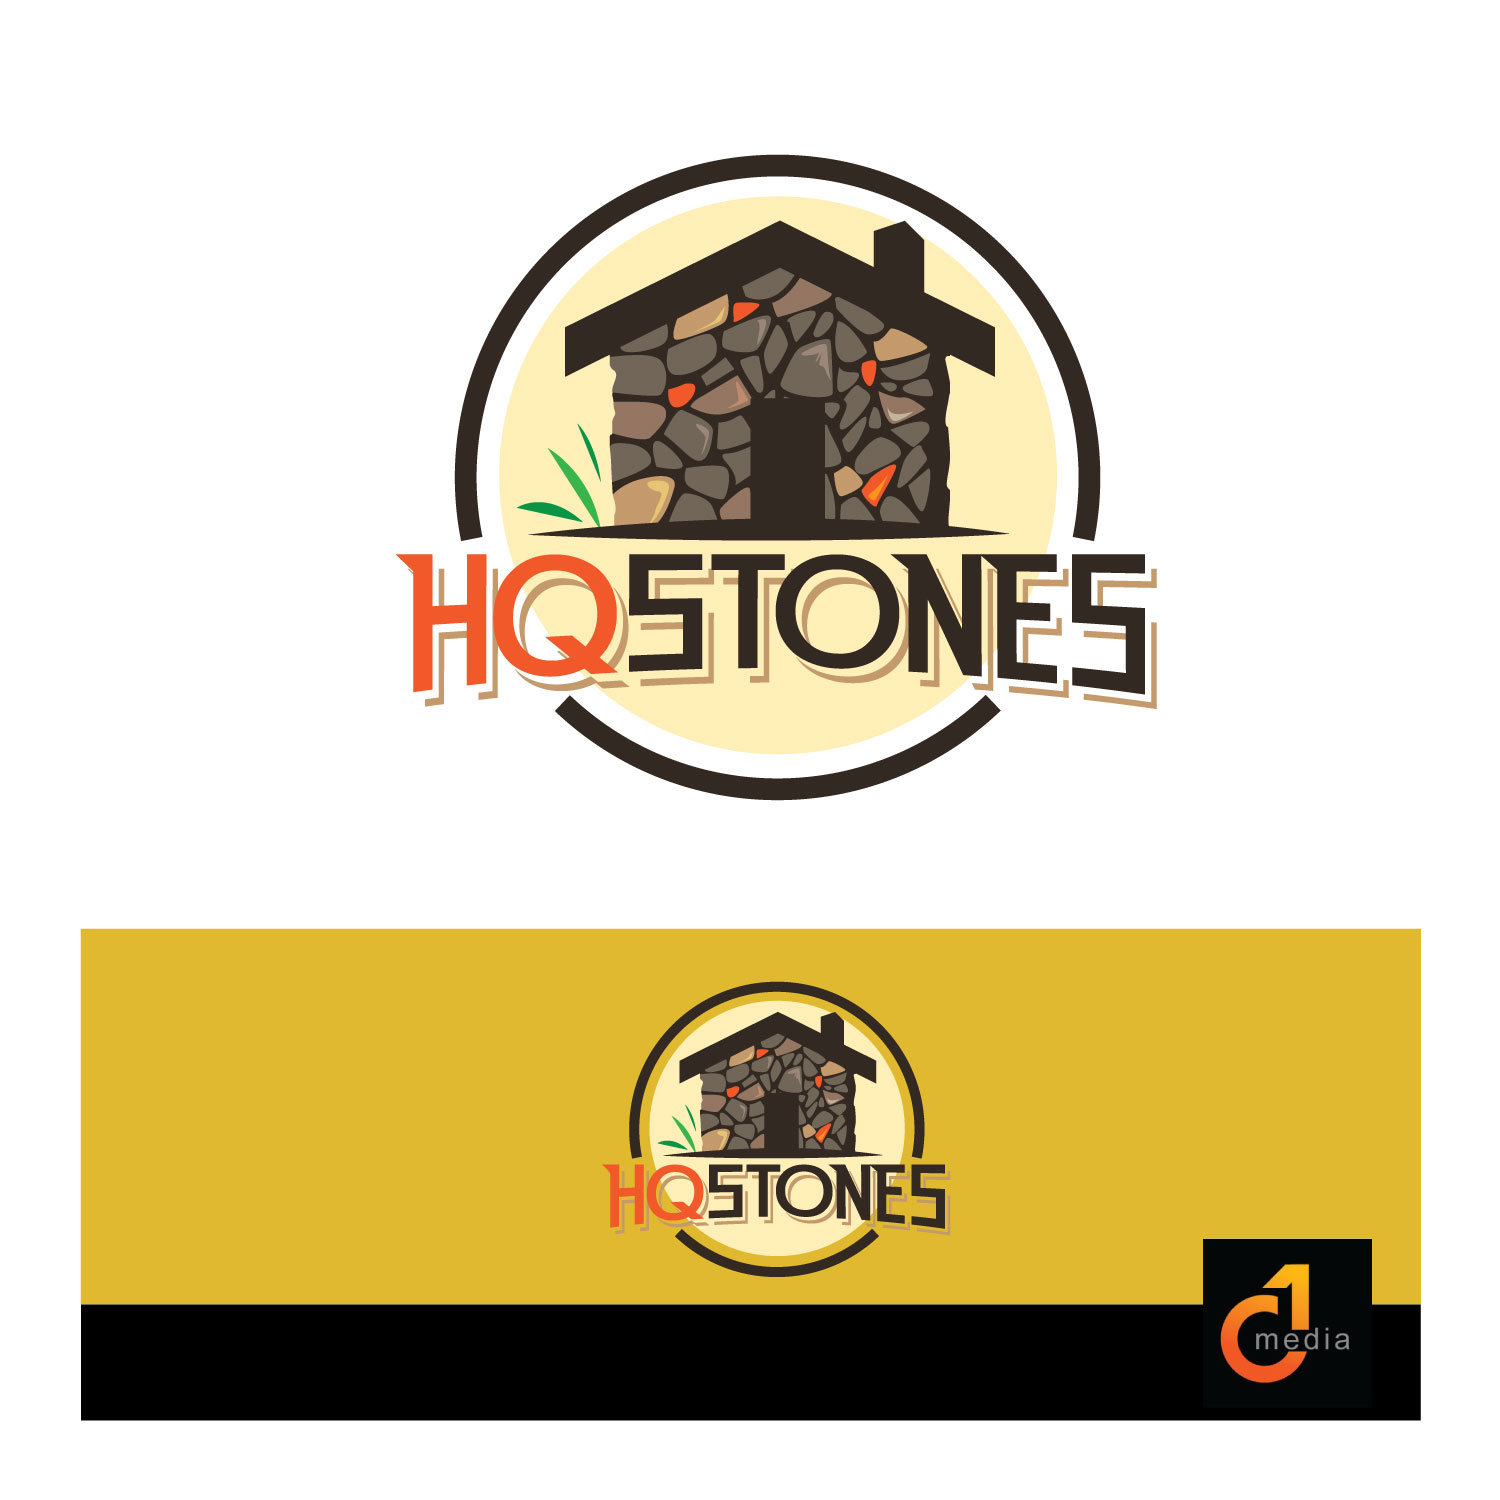 Masculine Modern Construction Logo Design For Hq Stones By